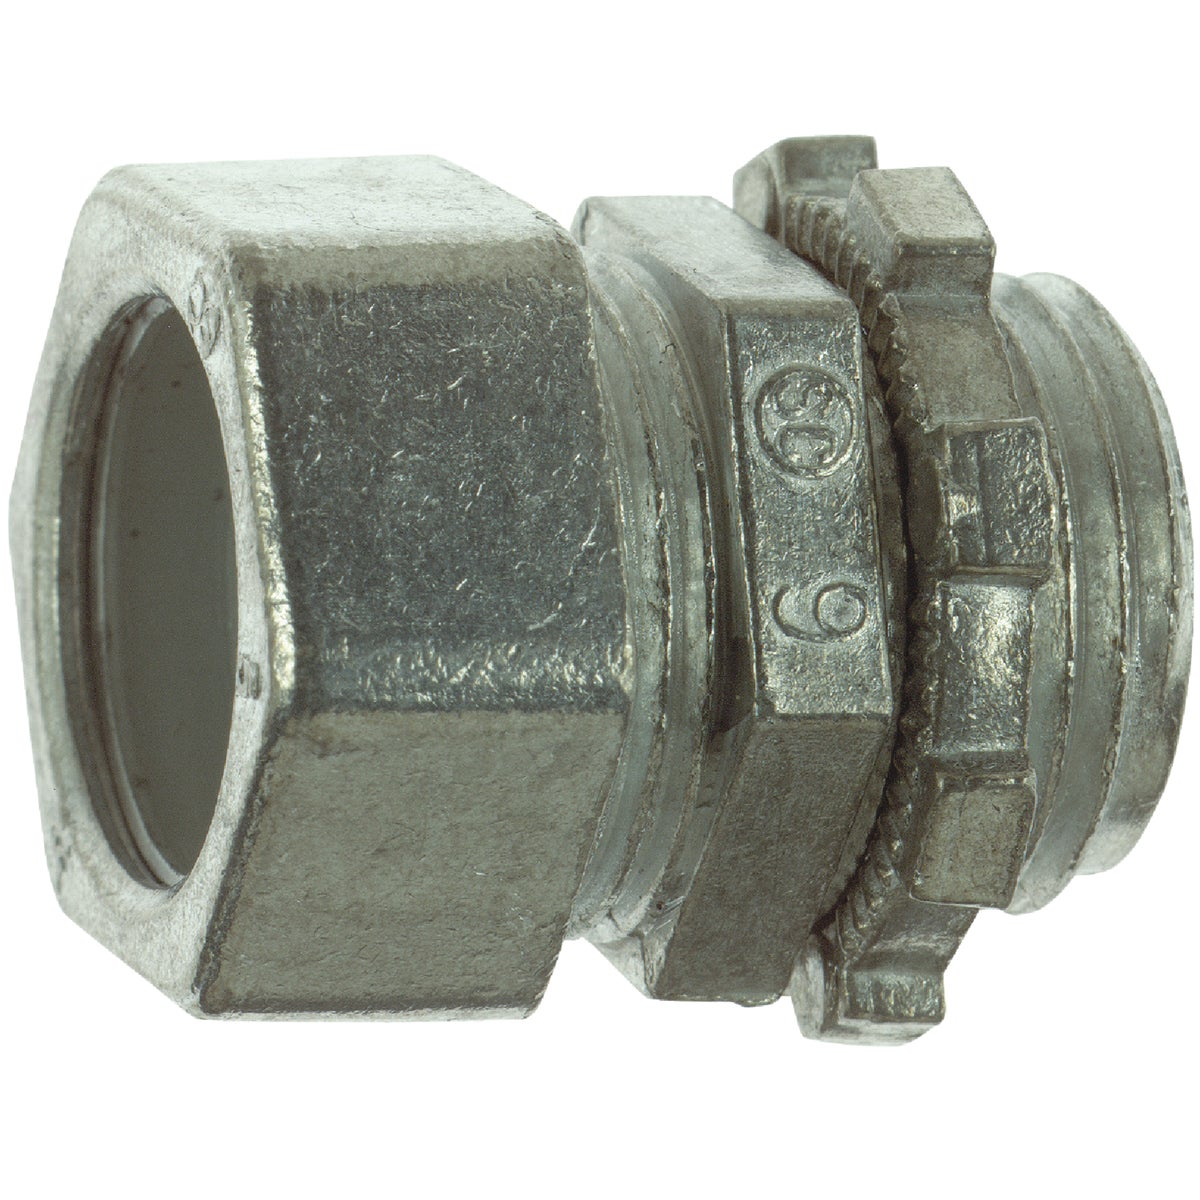 "1/2"" EMT CONNECTOR - TC211SC1 by Thomas & Betts"